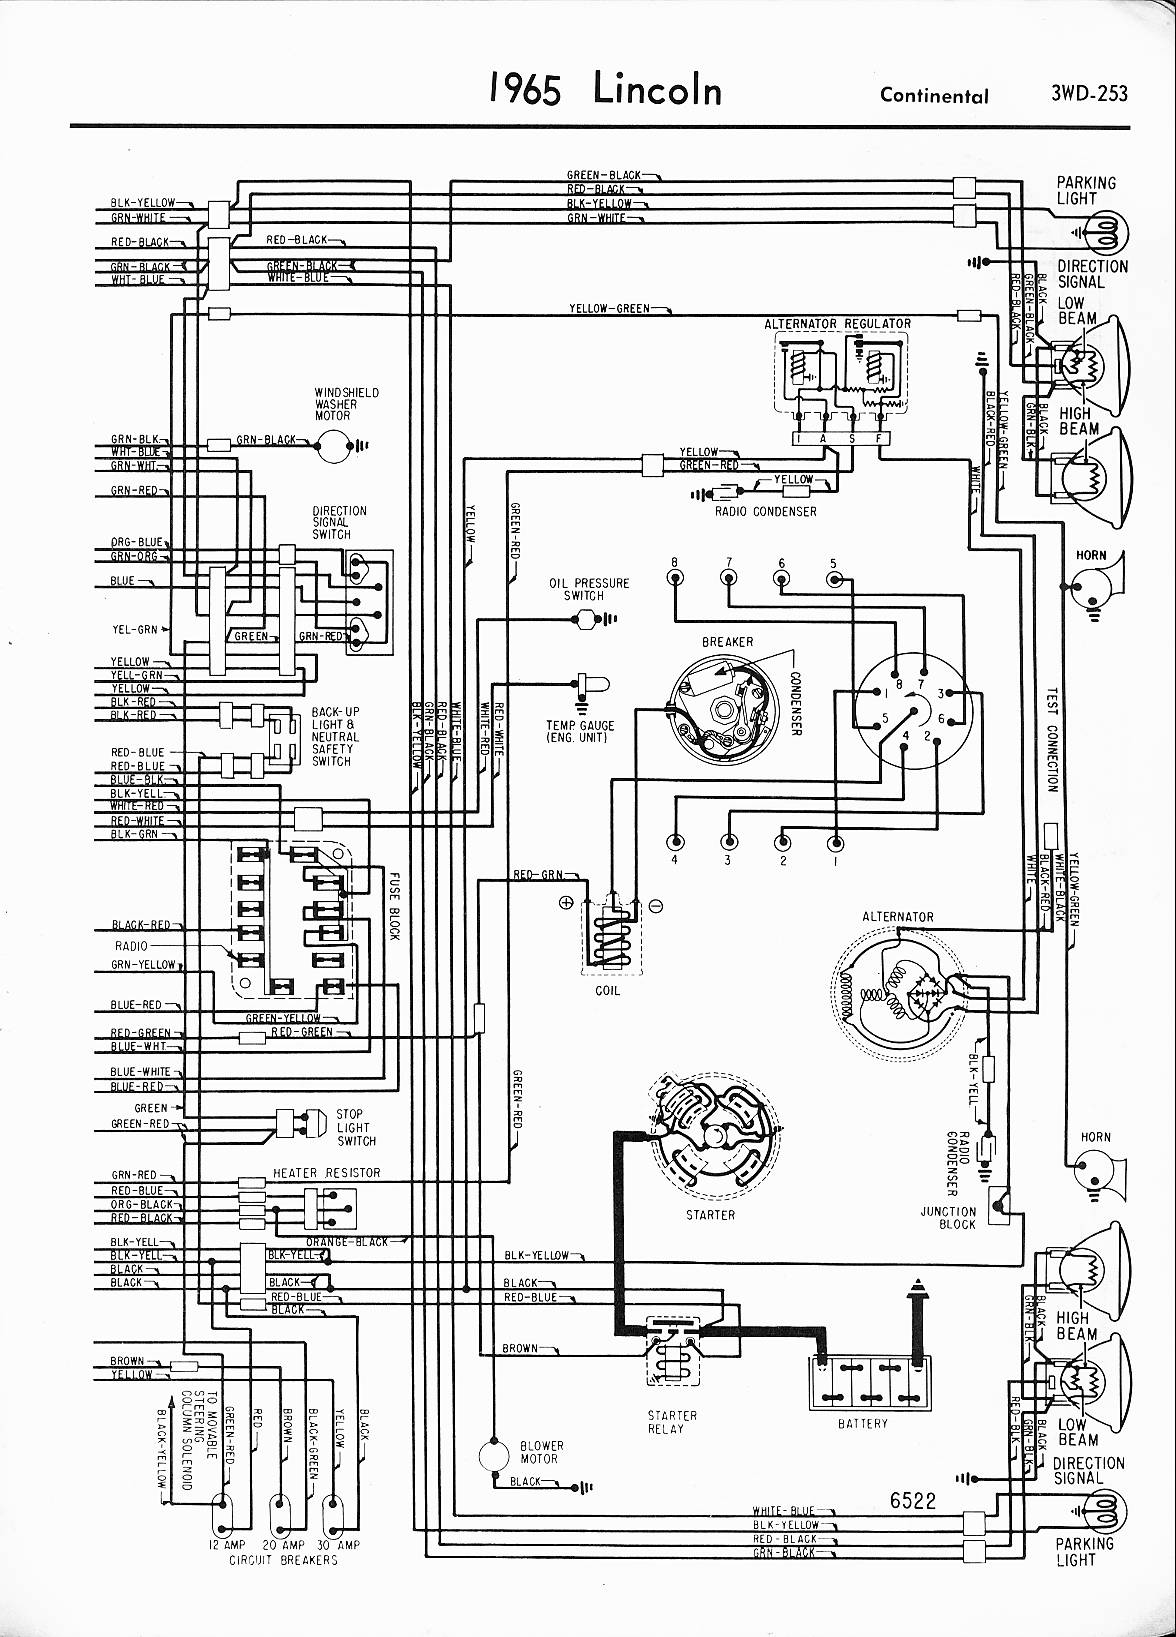 Lincoln Wiring Diagrams 1957 1965 1997 Lincoln Continental Throttle Diagram  1994 Lincoln Wiring Diagrams